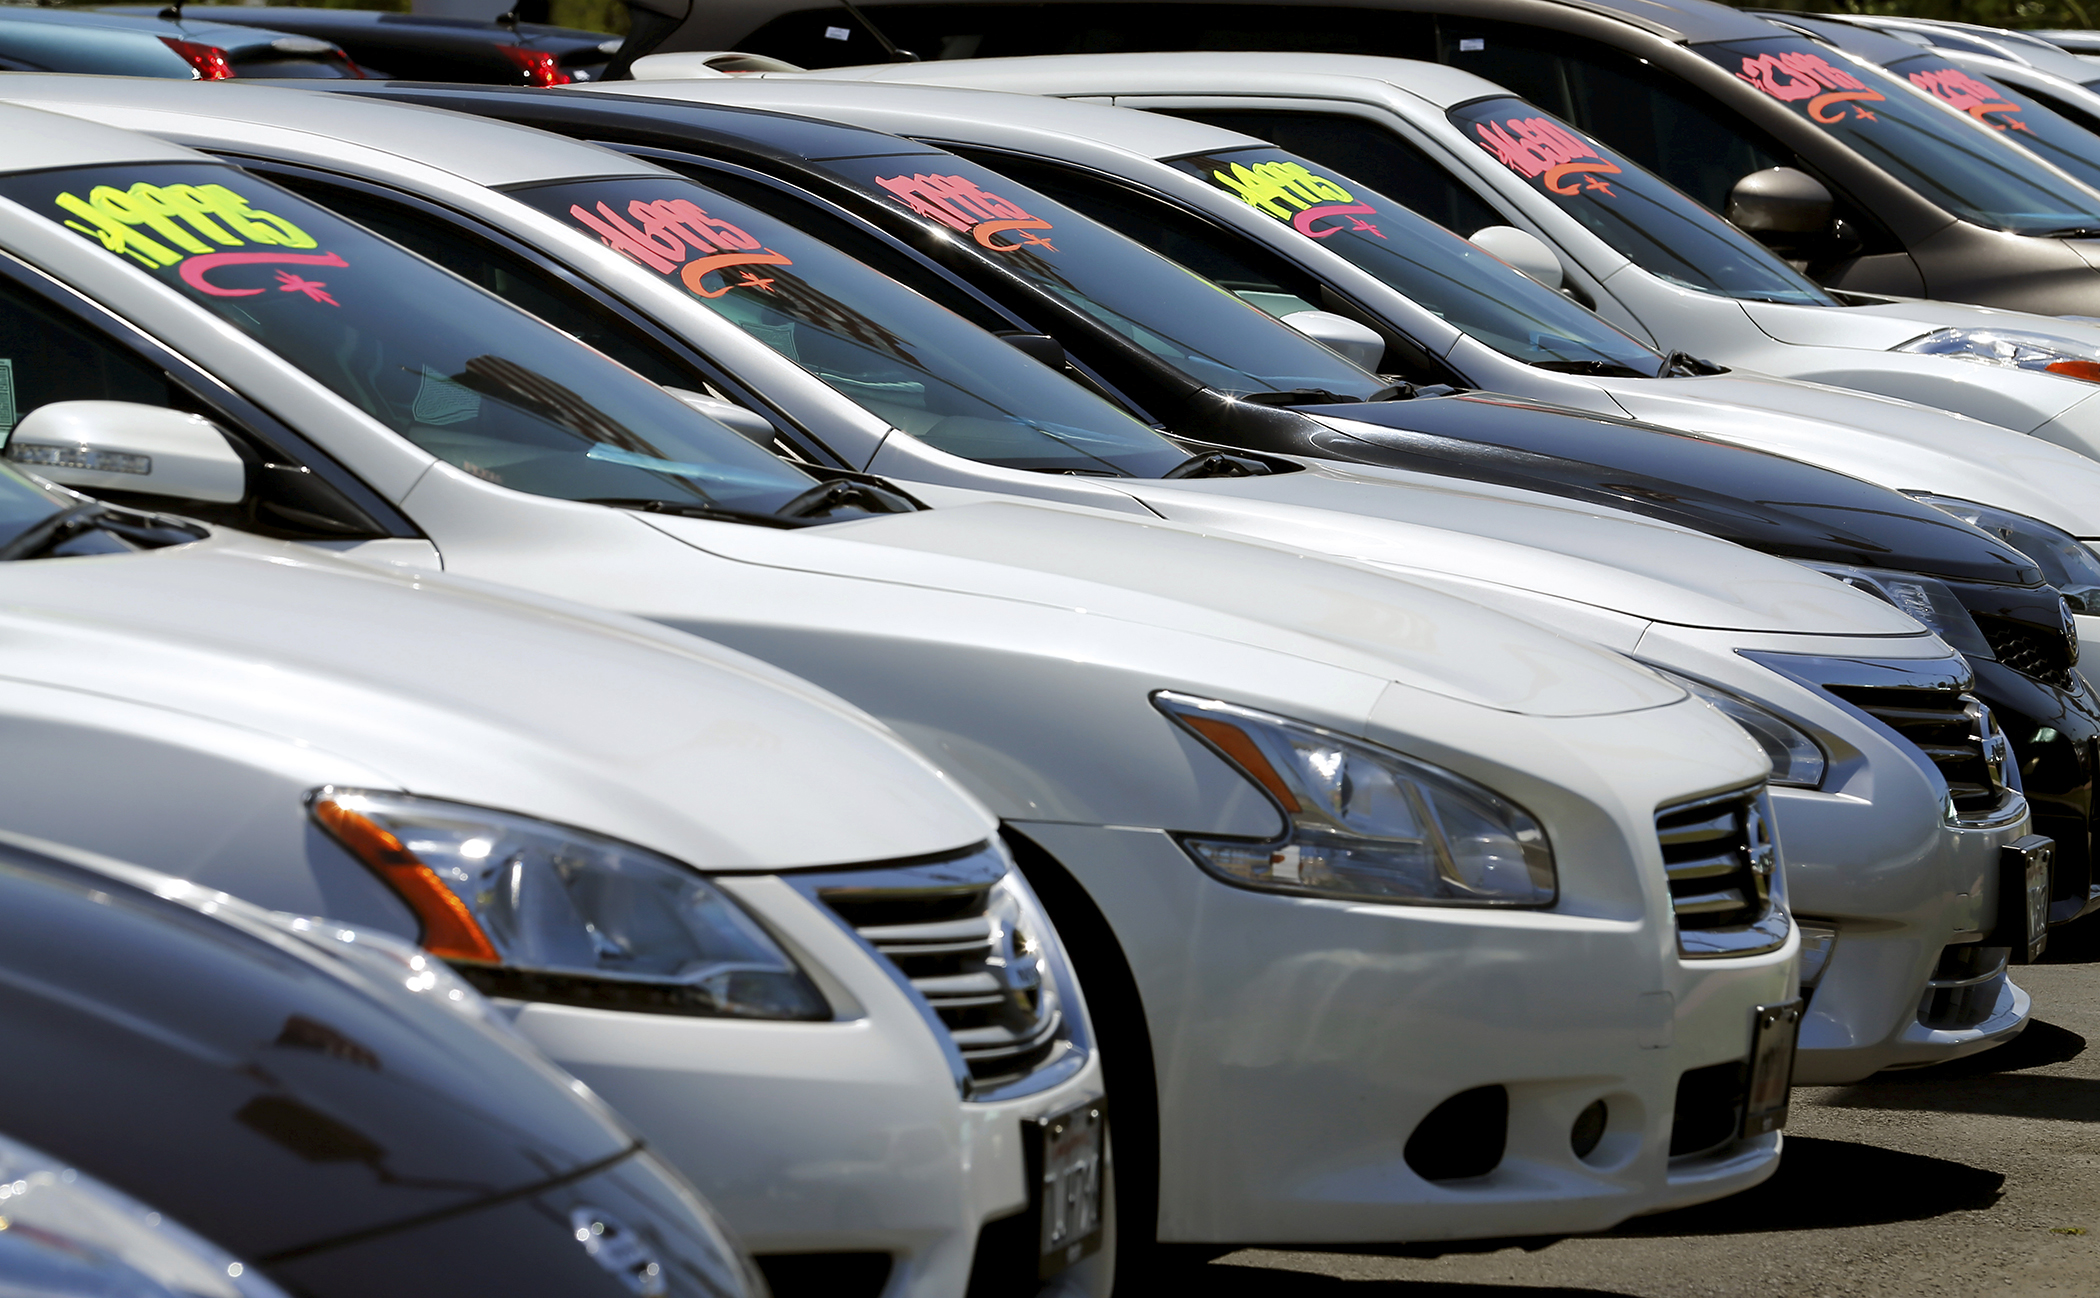 Automobiles are shown for sale at a car dealership in Carlsbad, California, on May 2, 2016.